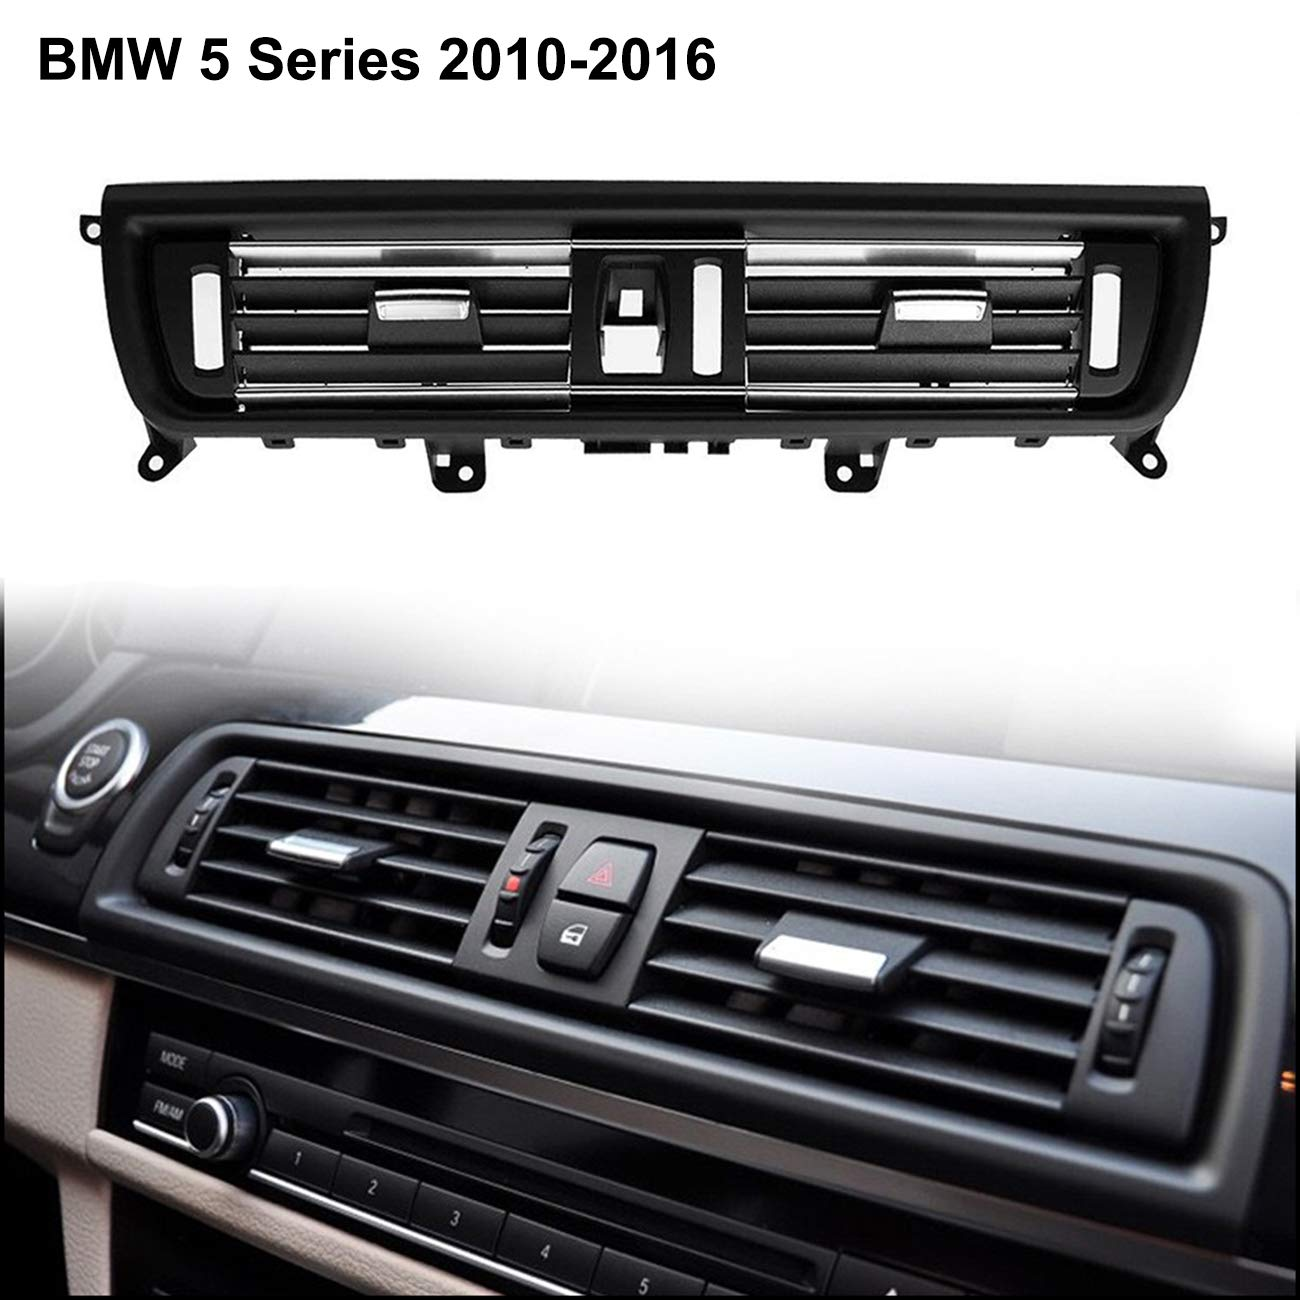 ALAVENTE Upgraded Front Air Grille, Front Console Grill Dashboard AC Air Conditioning Air Vent for BMW 5 Series 520 523 525 528 530 535 F10/F11/F18 by ALAVENTE